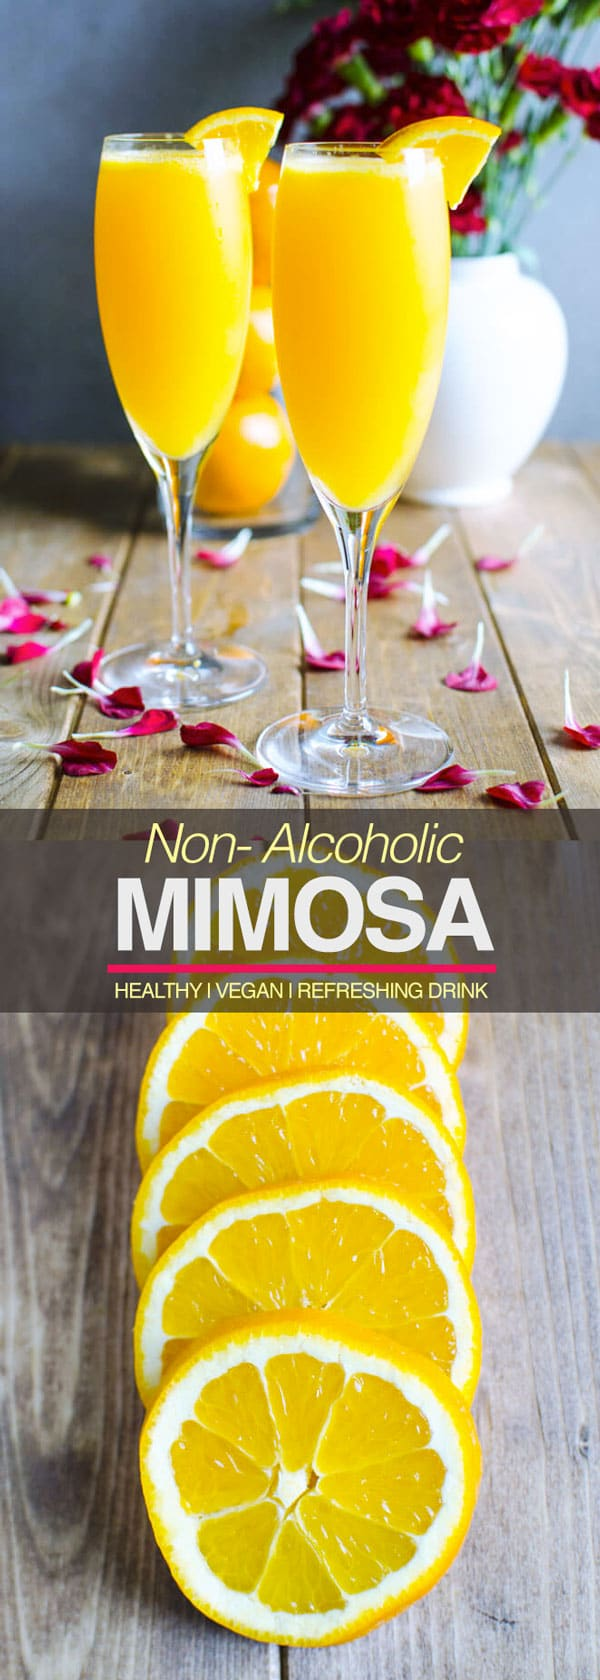 Best Mimosa Recipe - 2 ingredients, simplest, and quickest an amazing brunch drink. It is also healthy, non alcoholic & a naturally sweetened drink   watchwhatueat.com